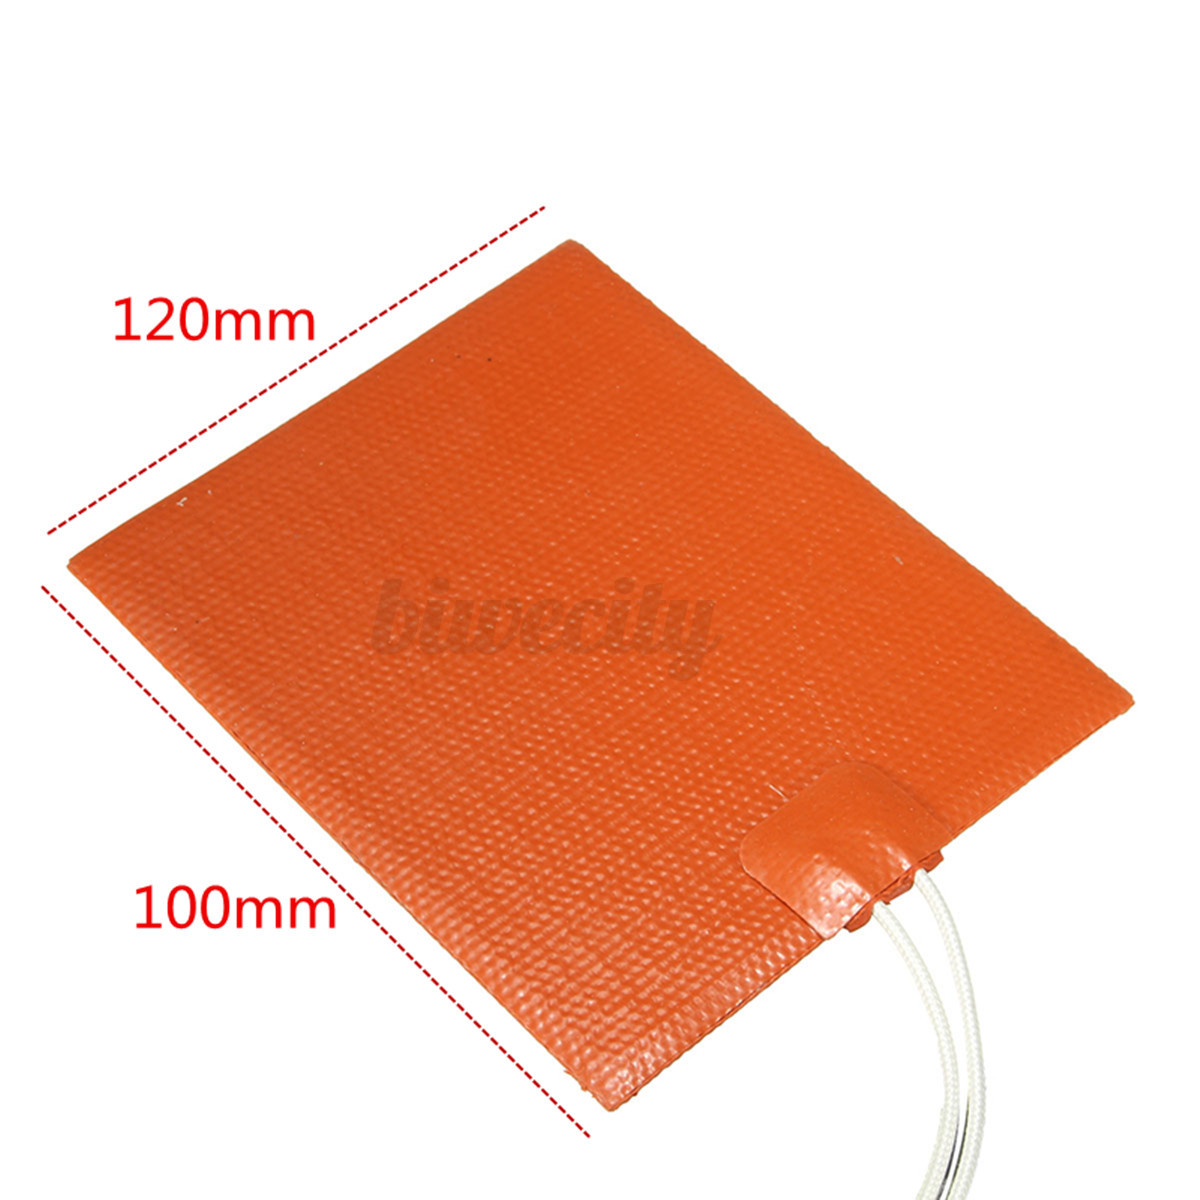 12v 12w Flexible Silicone Rubber Heater Hive Heating Plate